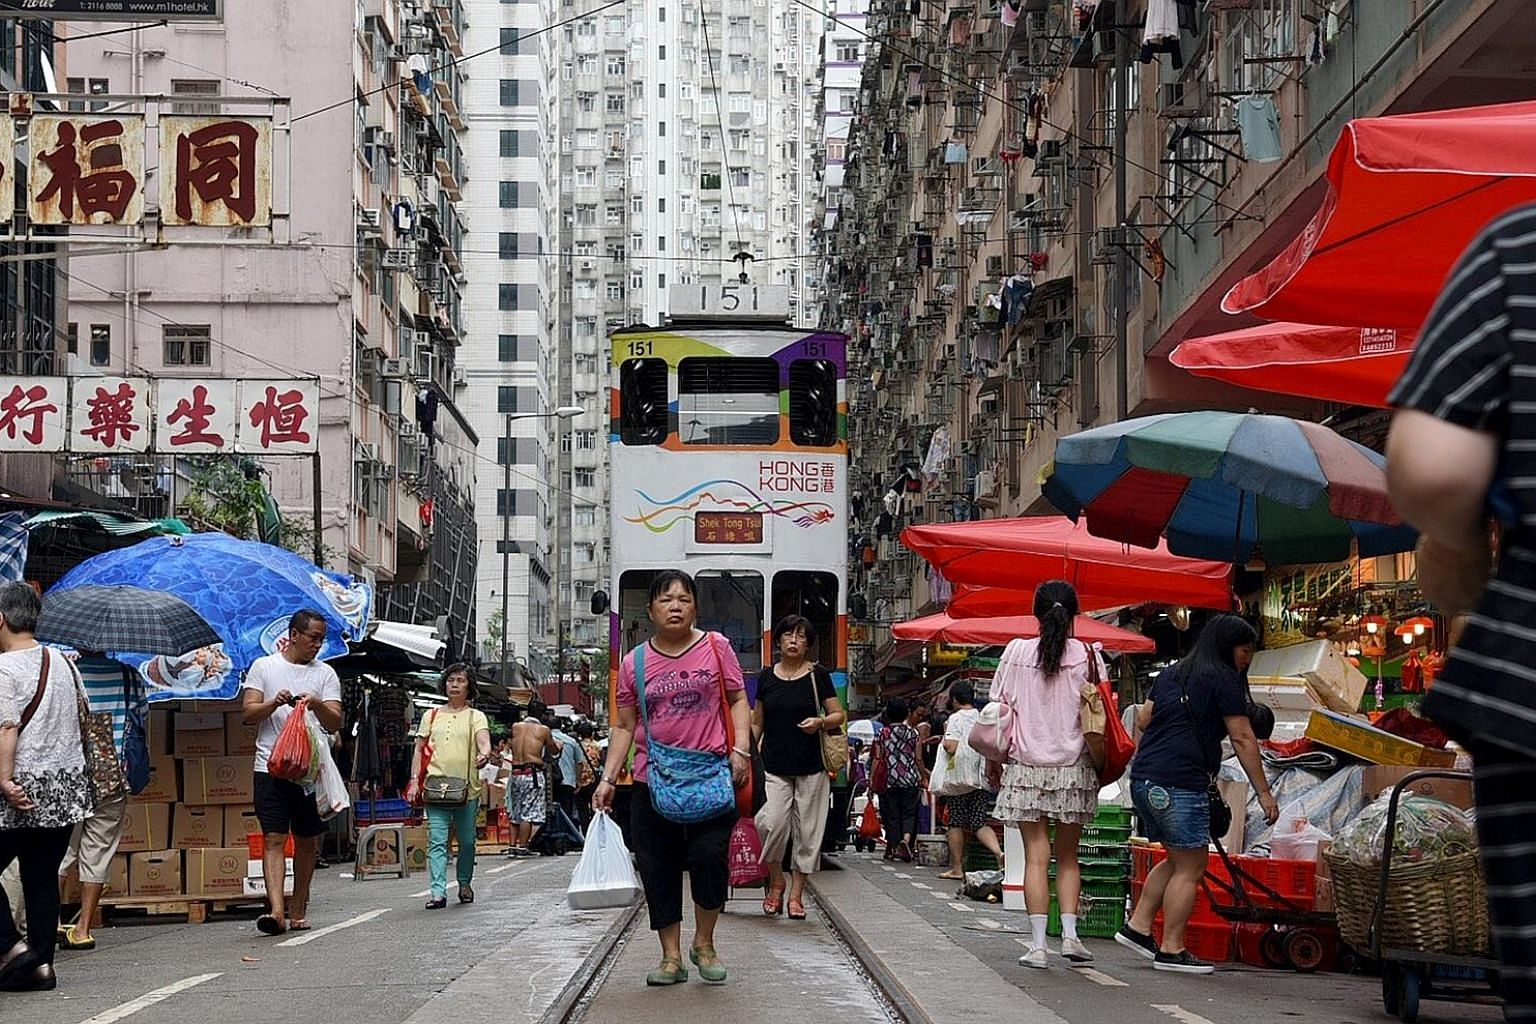 Ding ding, the tram operator will sound the bell as the tram tries to pass through the market in North Point - the only section of a tram route in Hong Kong that runs through a wet market.